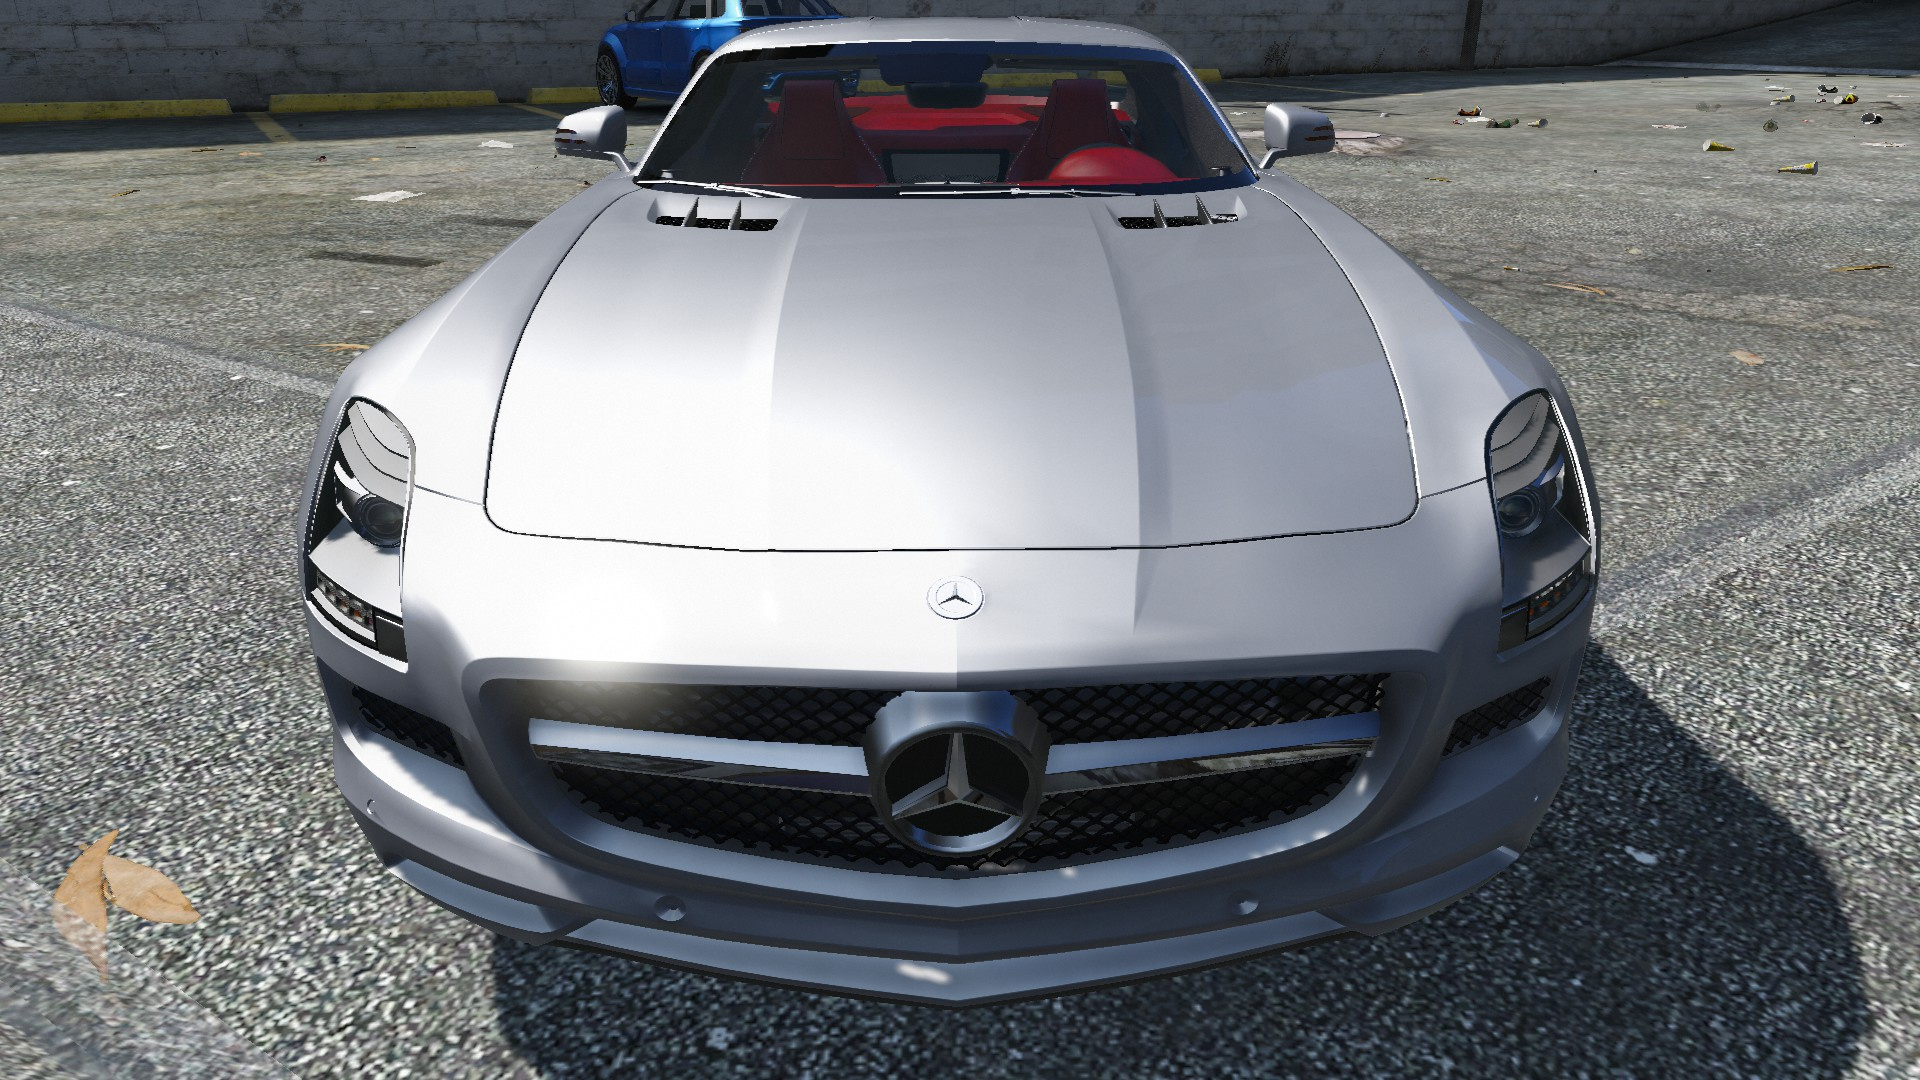 2011 mercedes benz sls amg c197 electric drive gta5. Black Bedroom Furniture Sets. Home Design Ideas